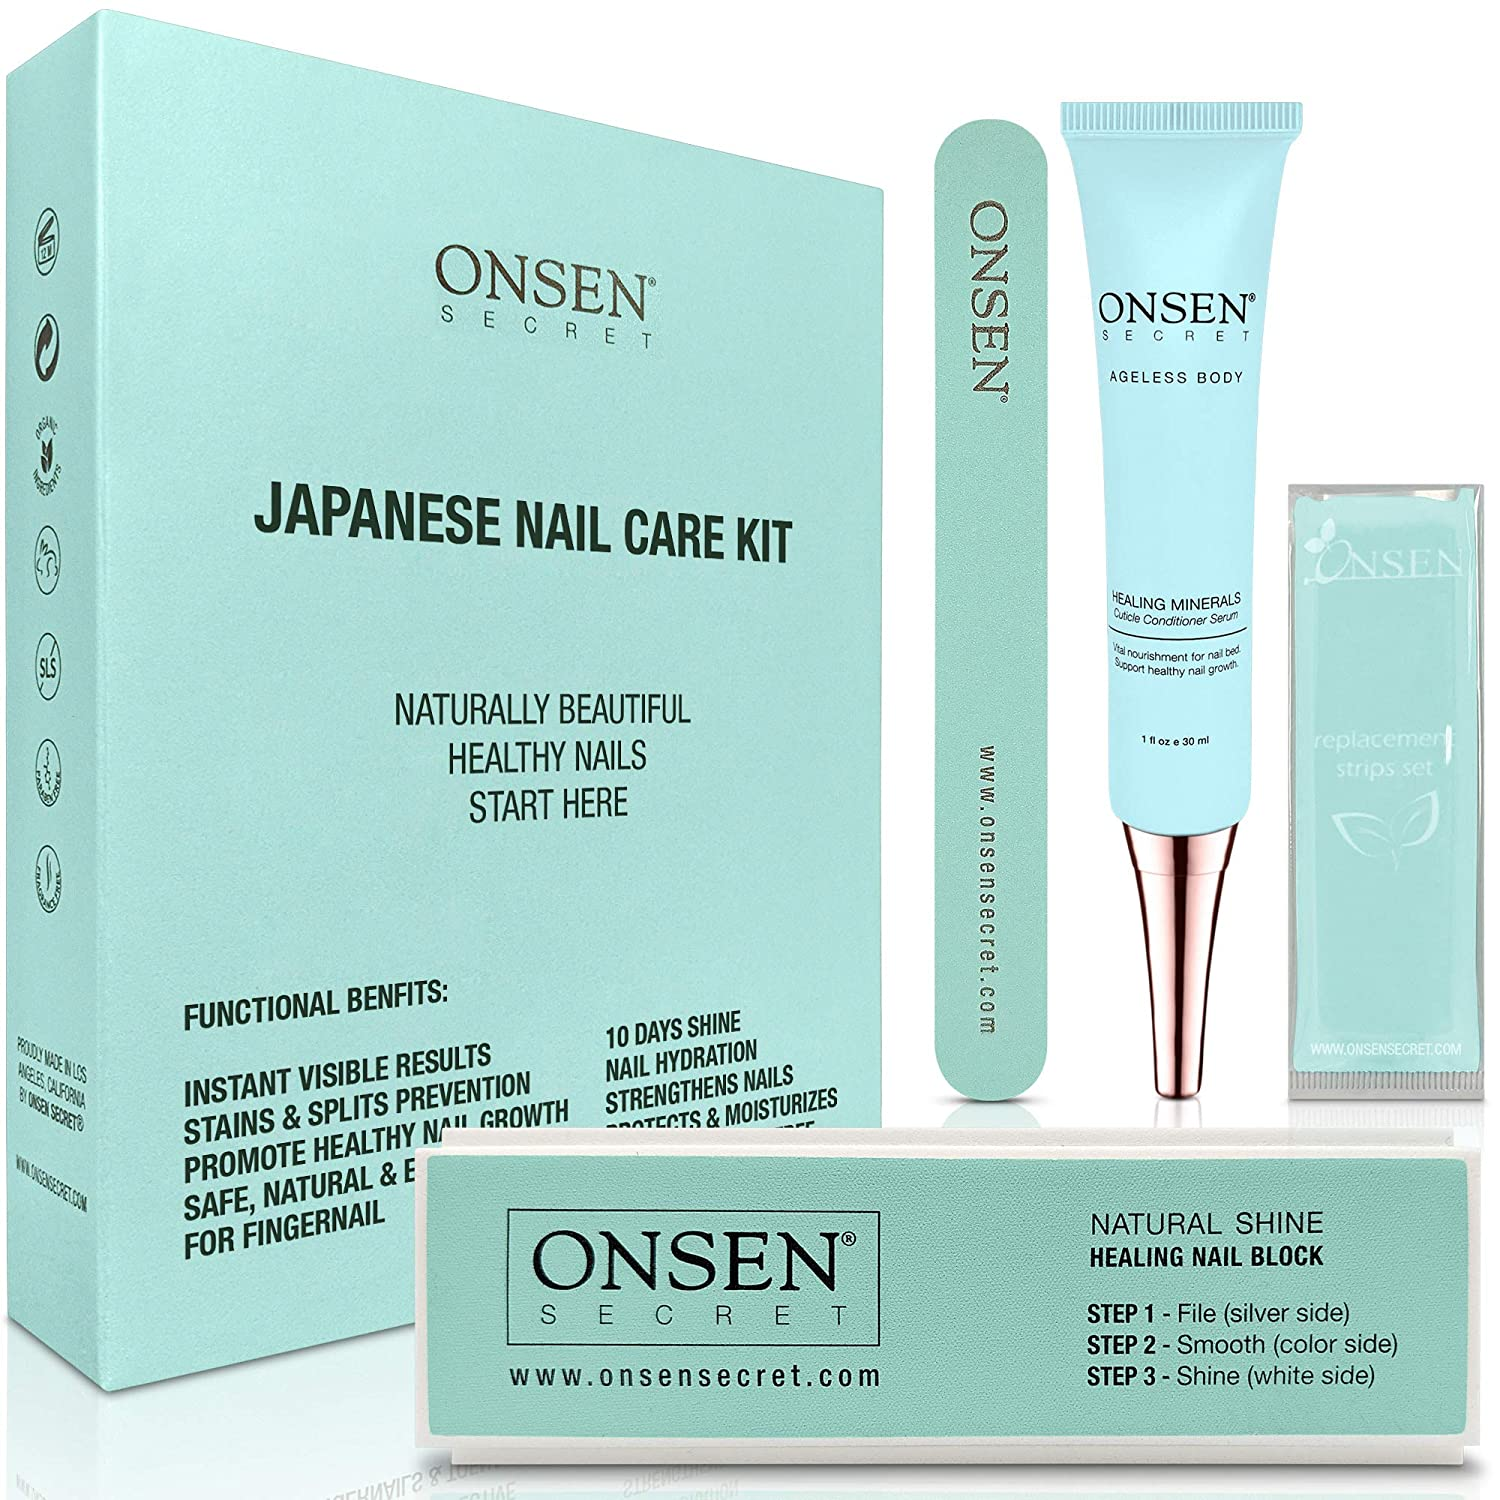 Onsen Japanese Nail Buffer and Shine Kit - Professional Nail File, 3-Way Nail Buffer Block with Free Replacement Pads and Nail Strengthening Cuticle Cream for Healthy Nails, Travel Size Nail Care Kit : Beauty